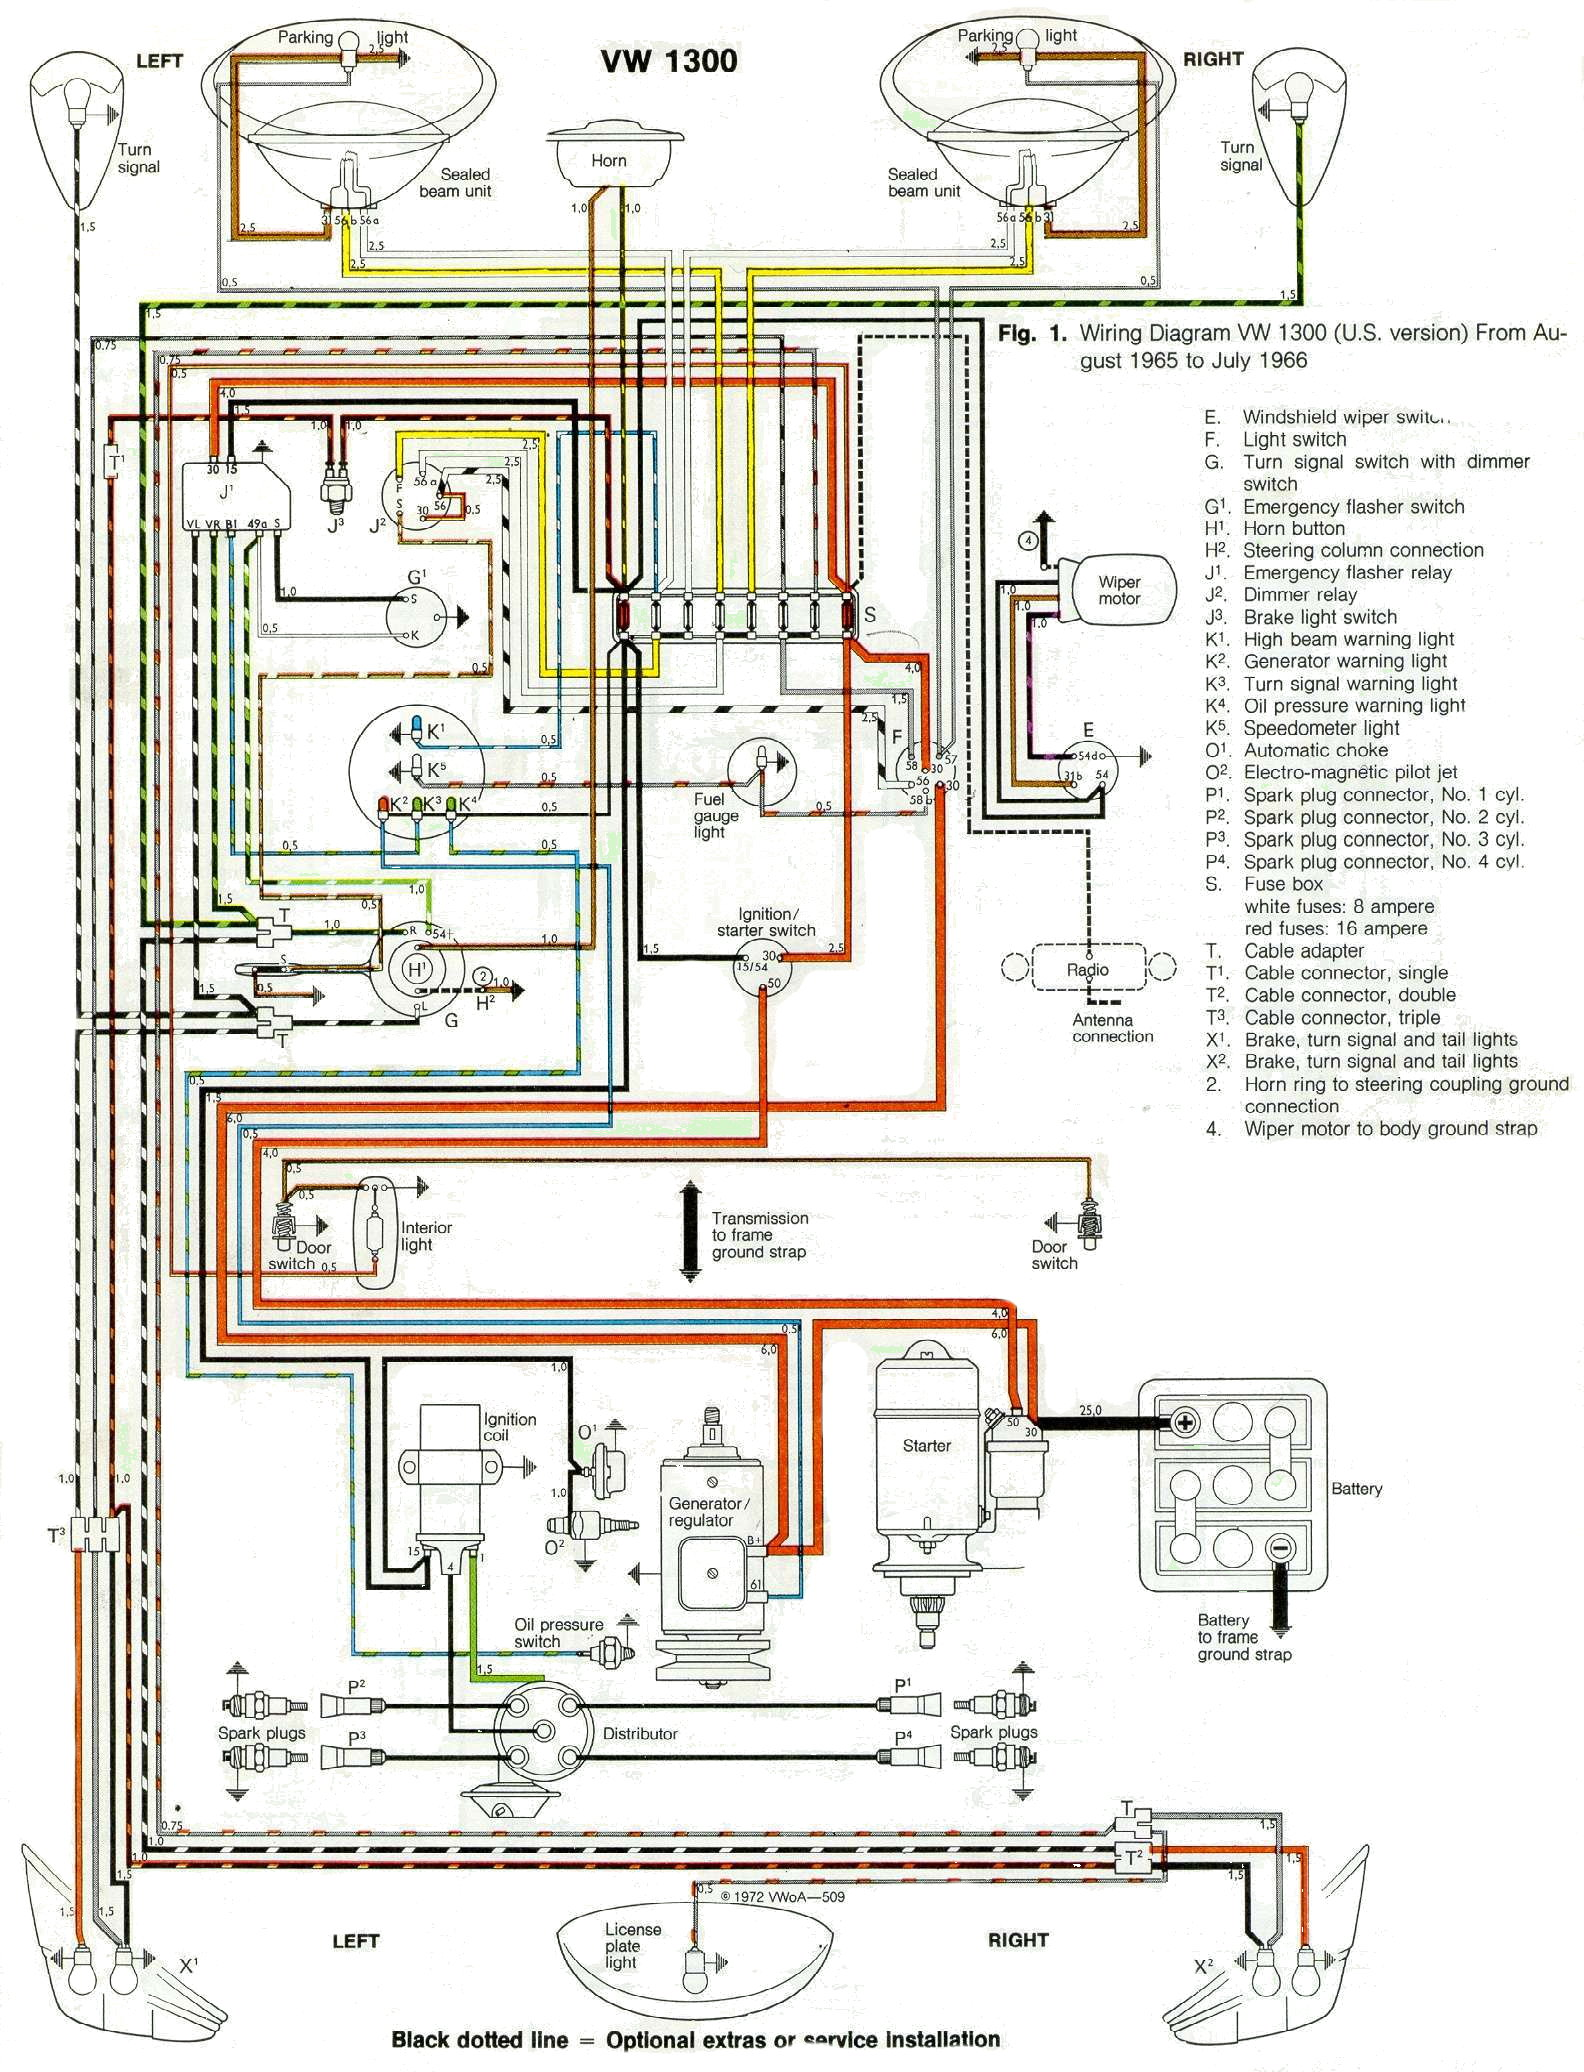 1966 Wiring 1966 wiring diagram vw wiring diagrams at gsmx.co